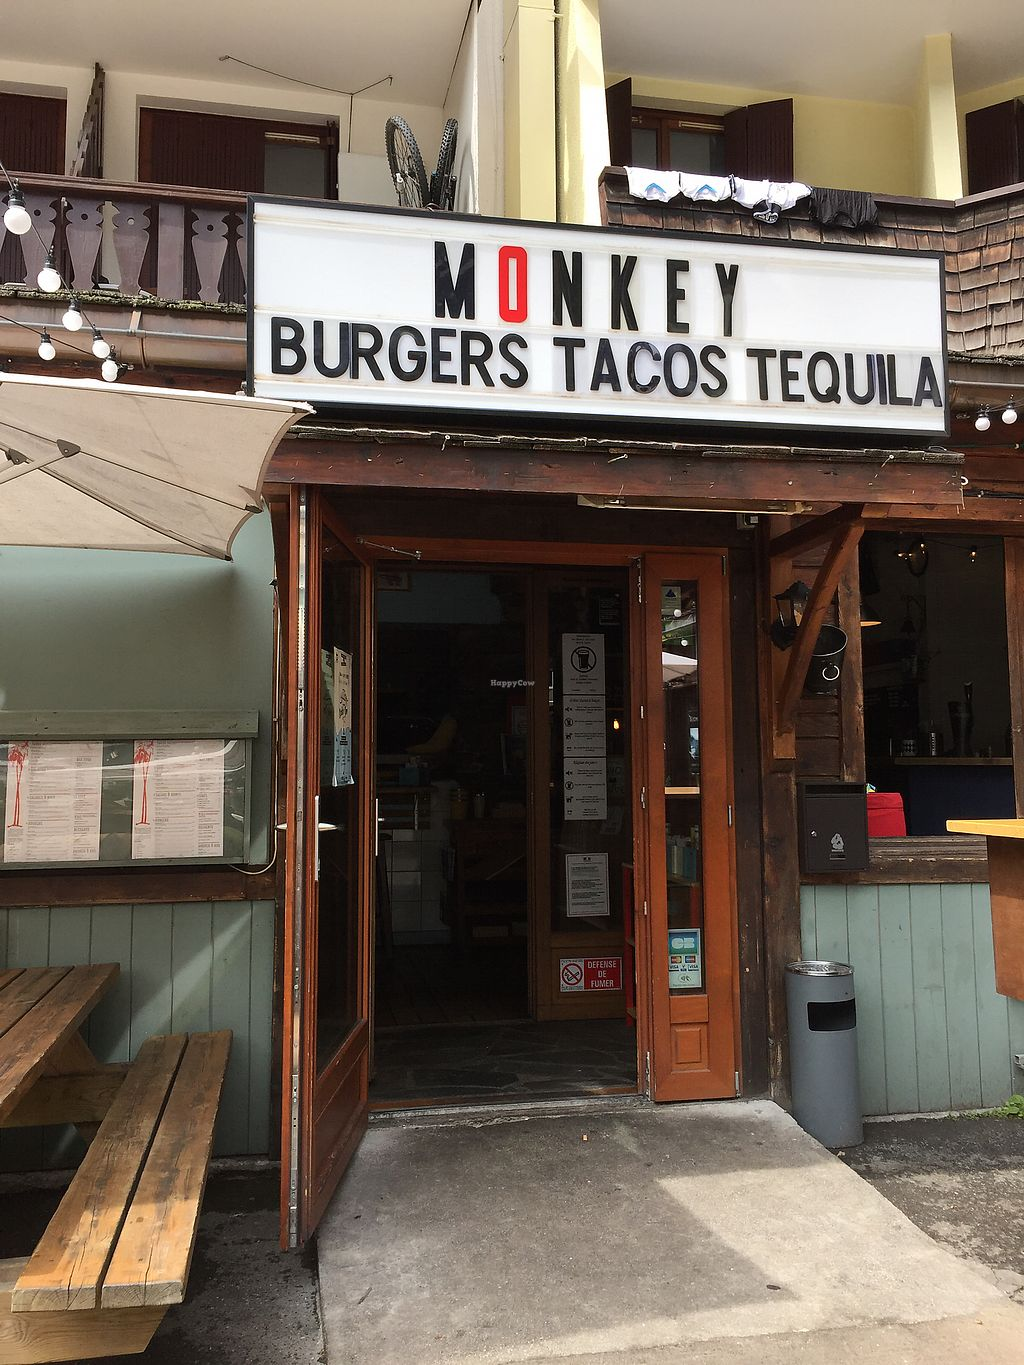 "Photo of Monkey  by <a href=""/members/profile/BeckLauer"">BeckLauer</a> <br/>Burgers, tacos, tequila <br/> August 16, 2017  - <a href='/contact/abuse/image/76874/293253'>Report</a>"